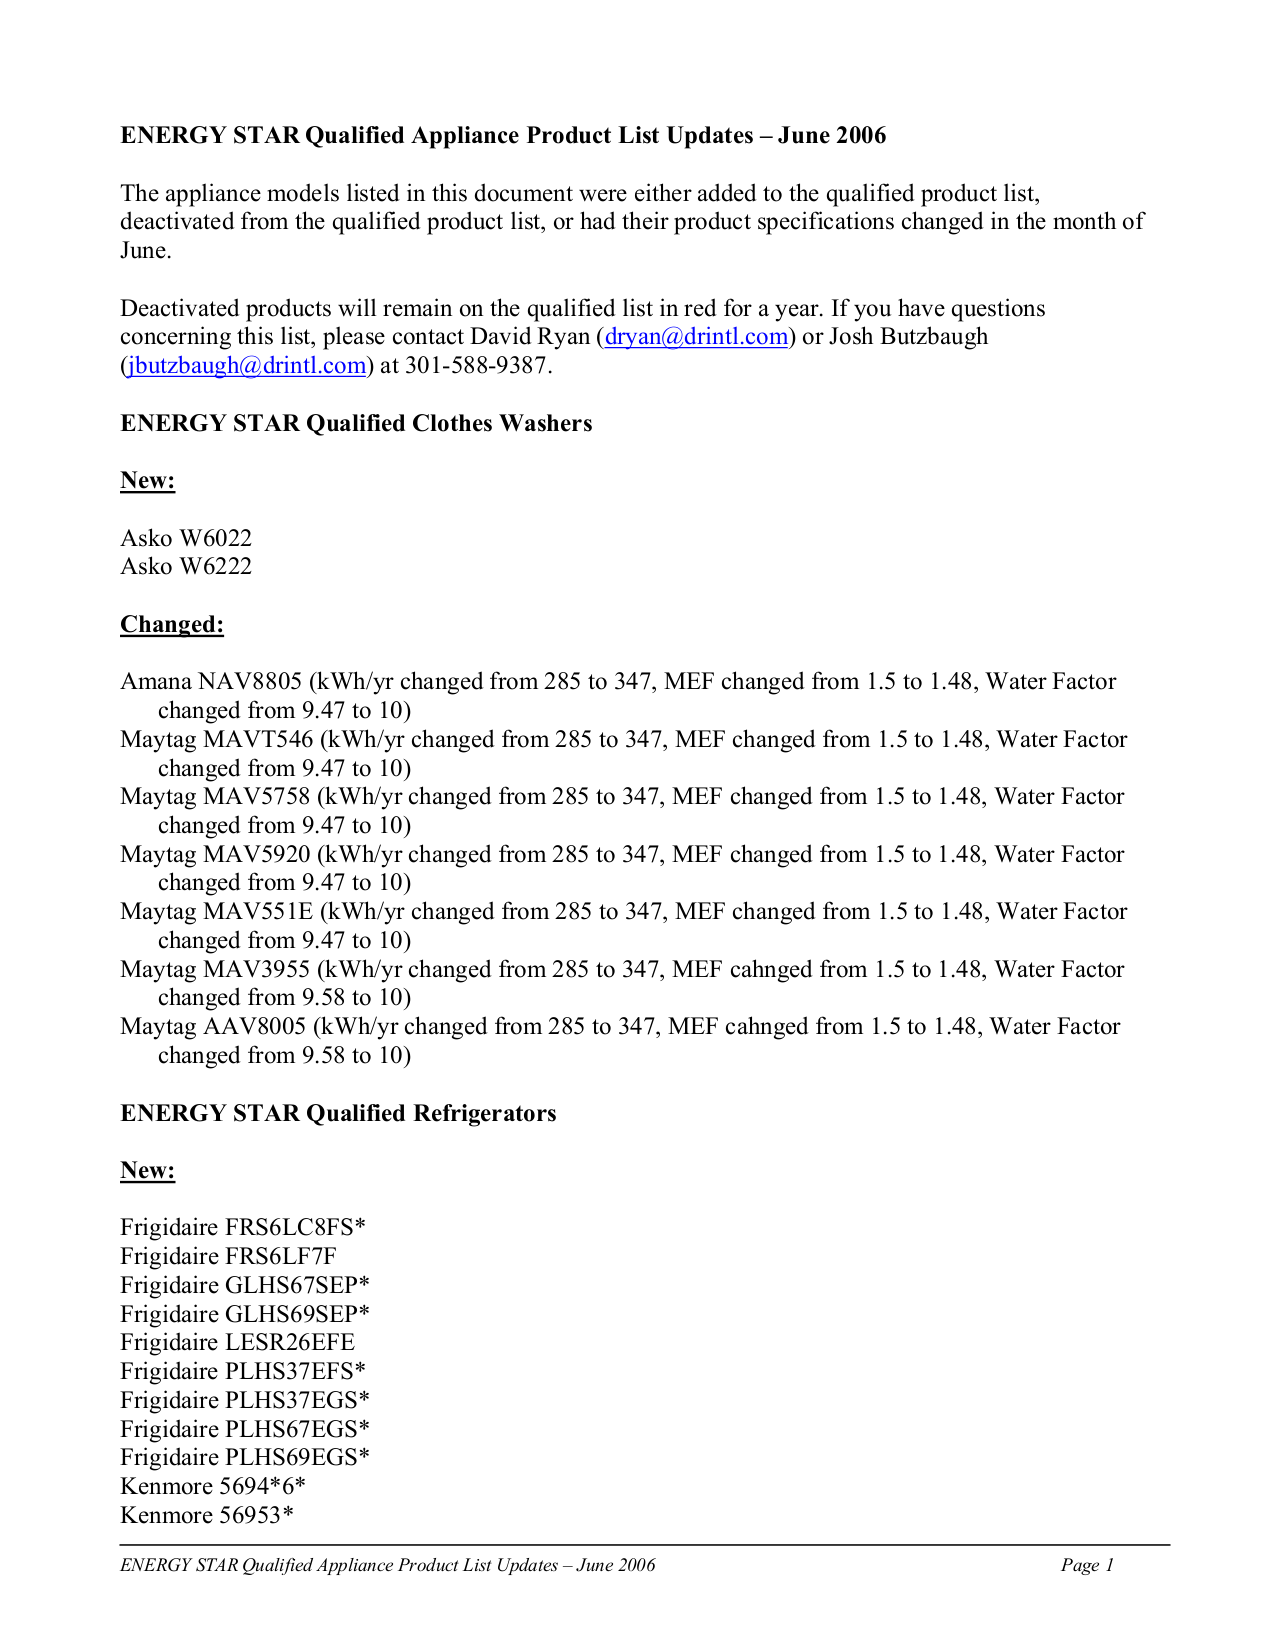 pdf for Whirlpool Air Conditioner ACC108PS manual